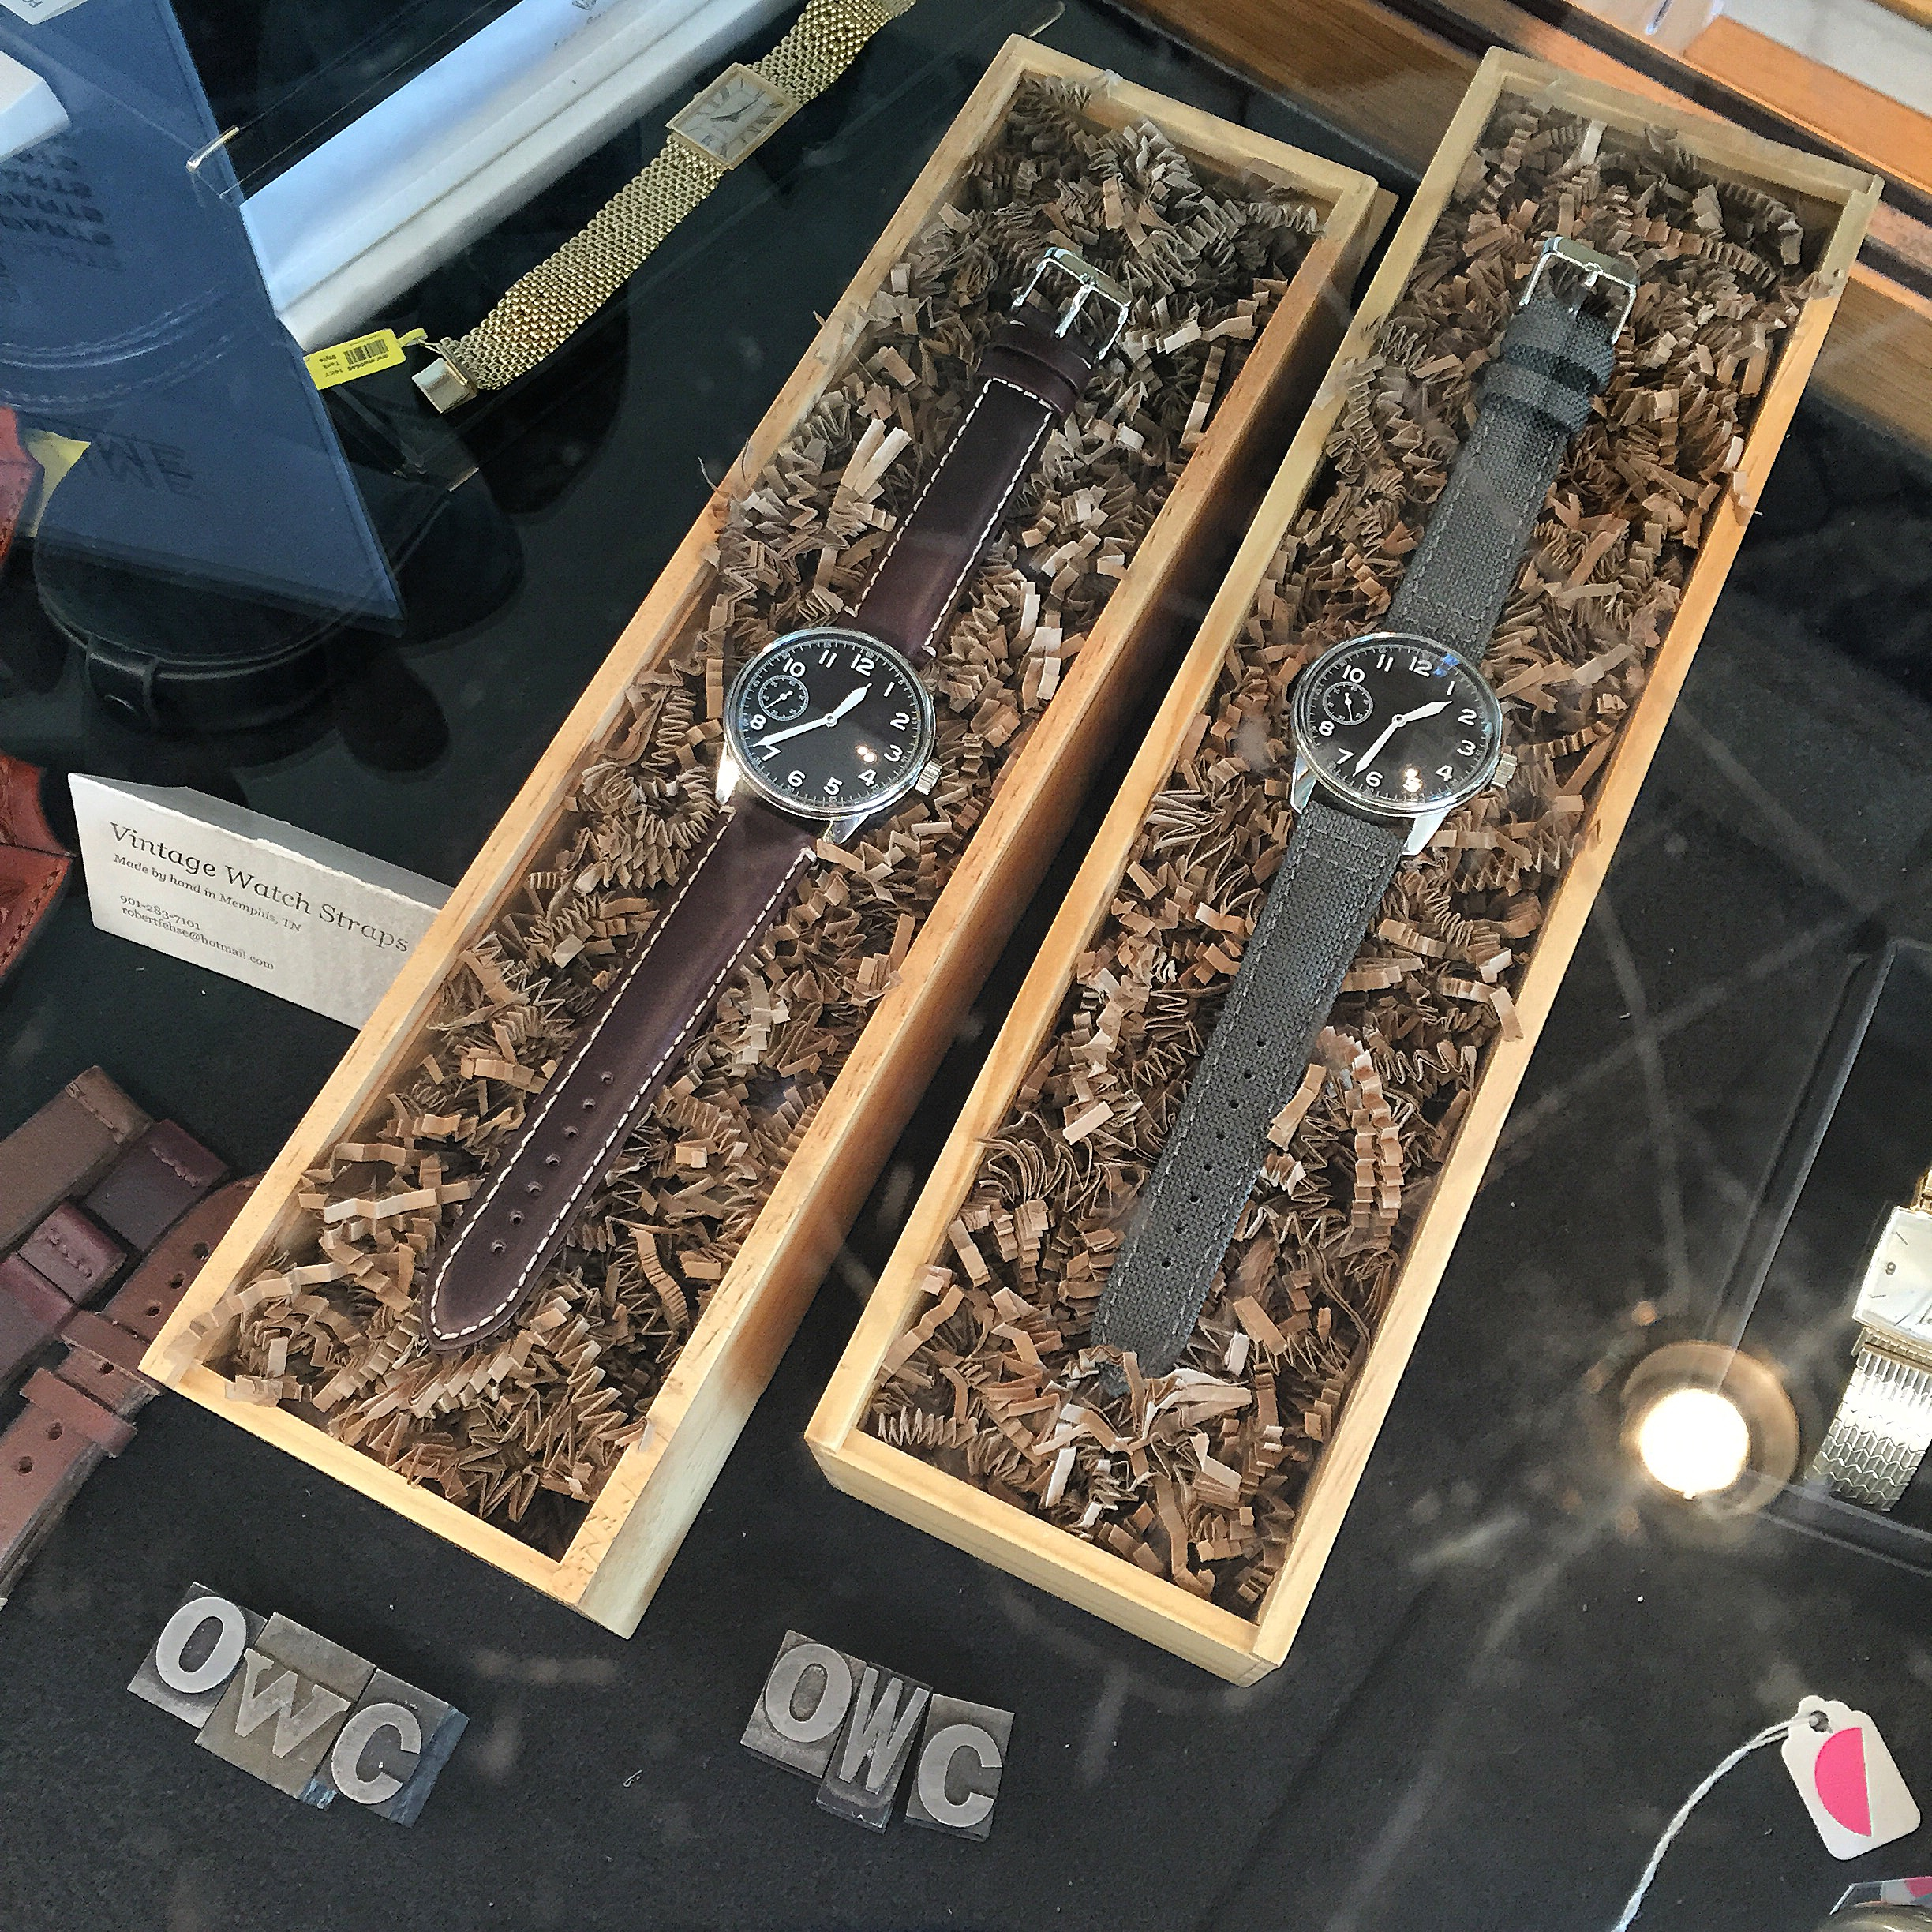 Vintage Field Watches on display